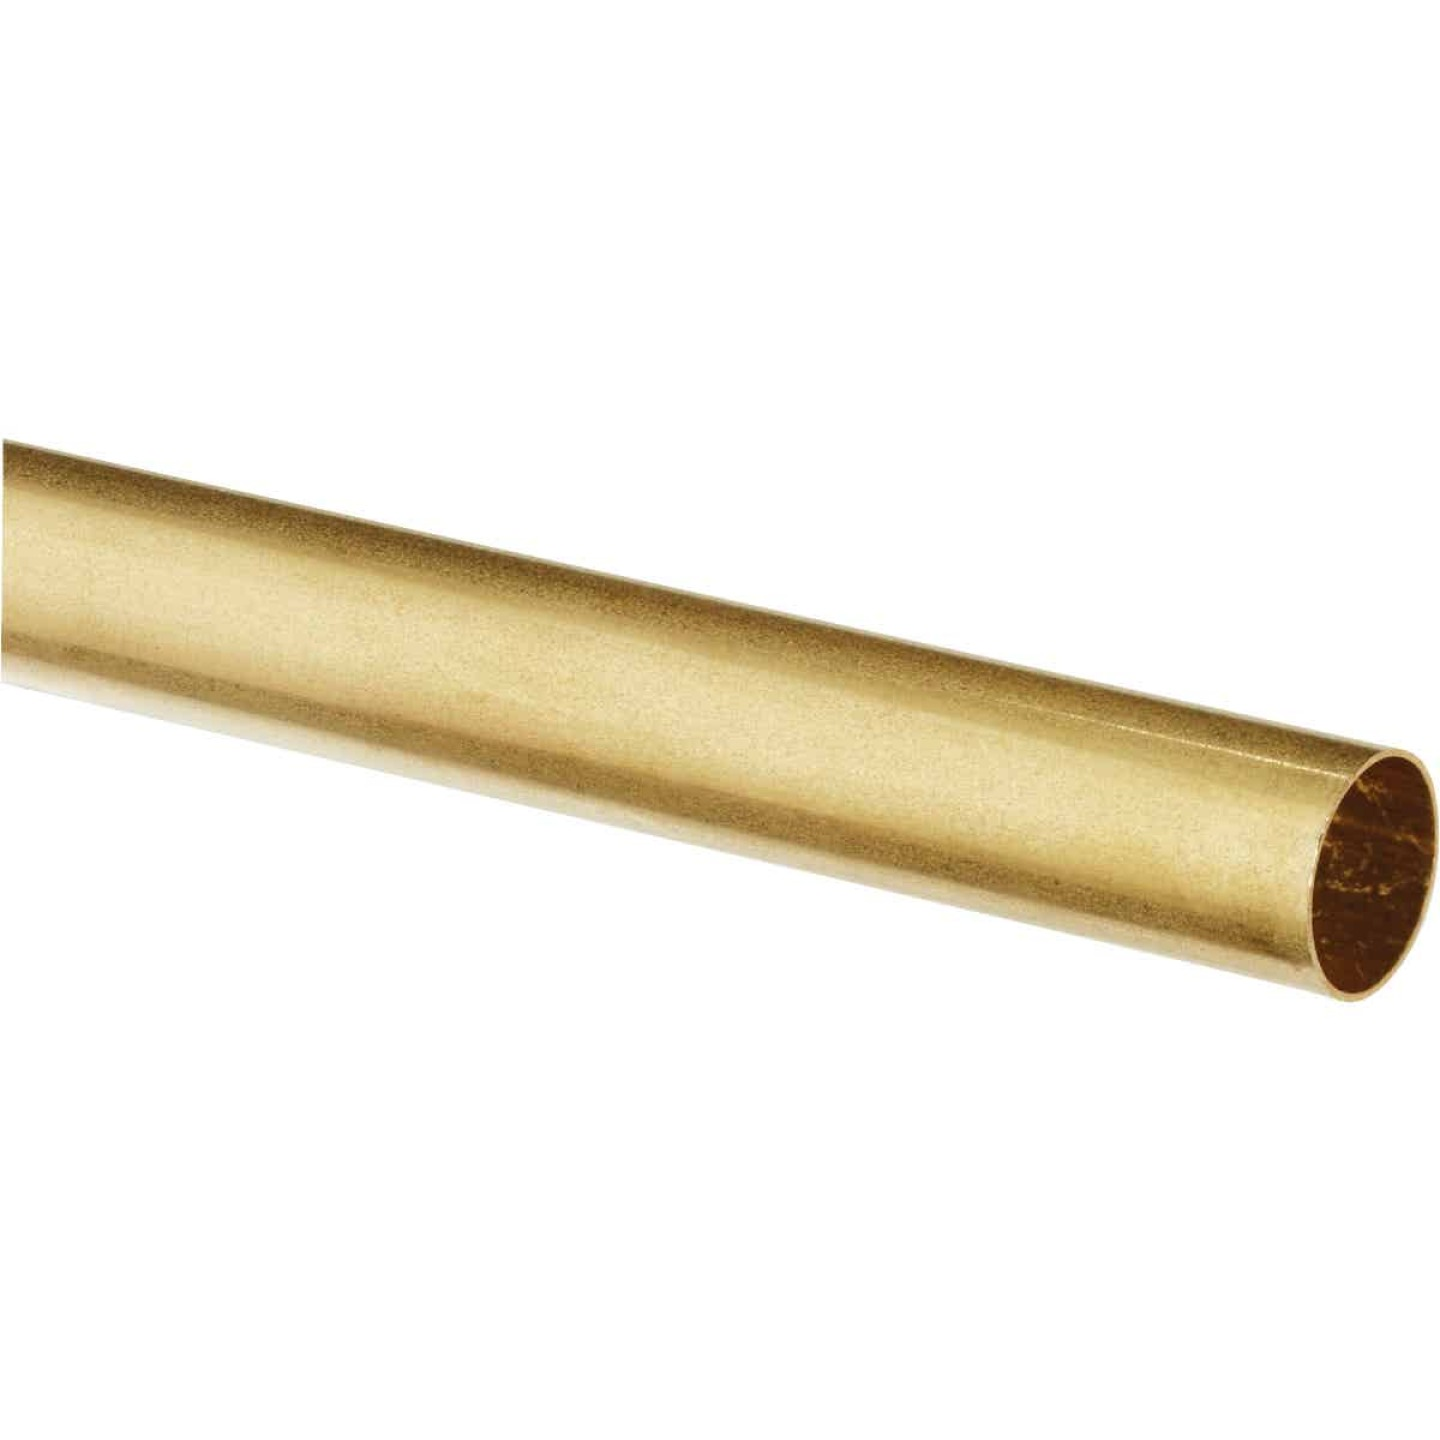 K&S Brass 3/8 In. O.D. x 1 Ft. Round Tube Stock Image 1